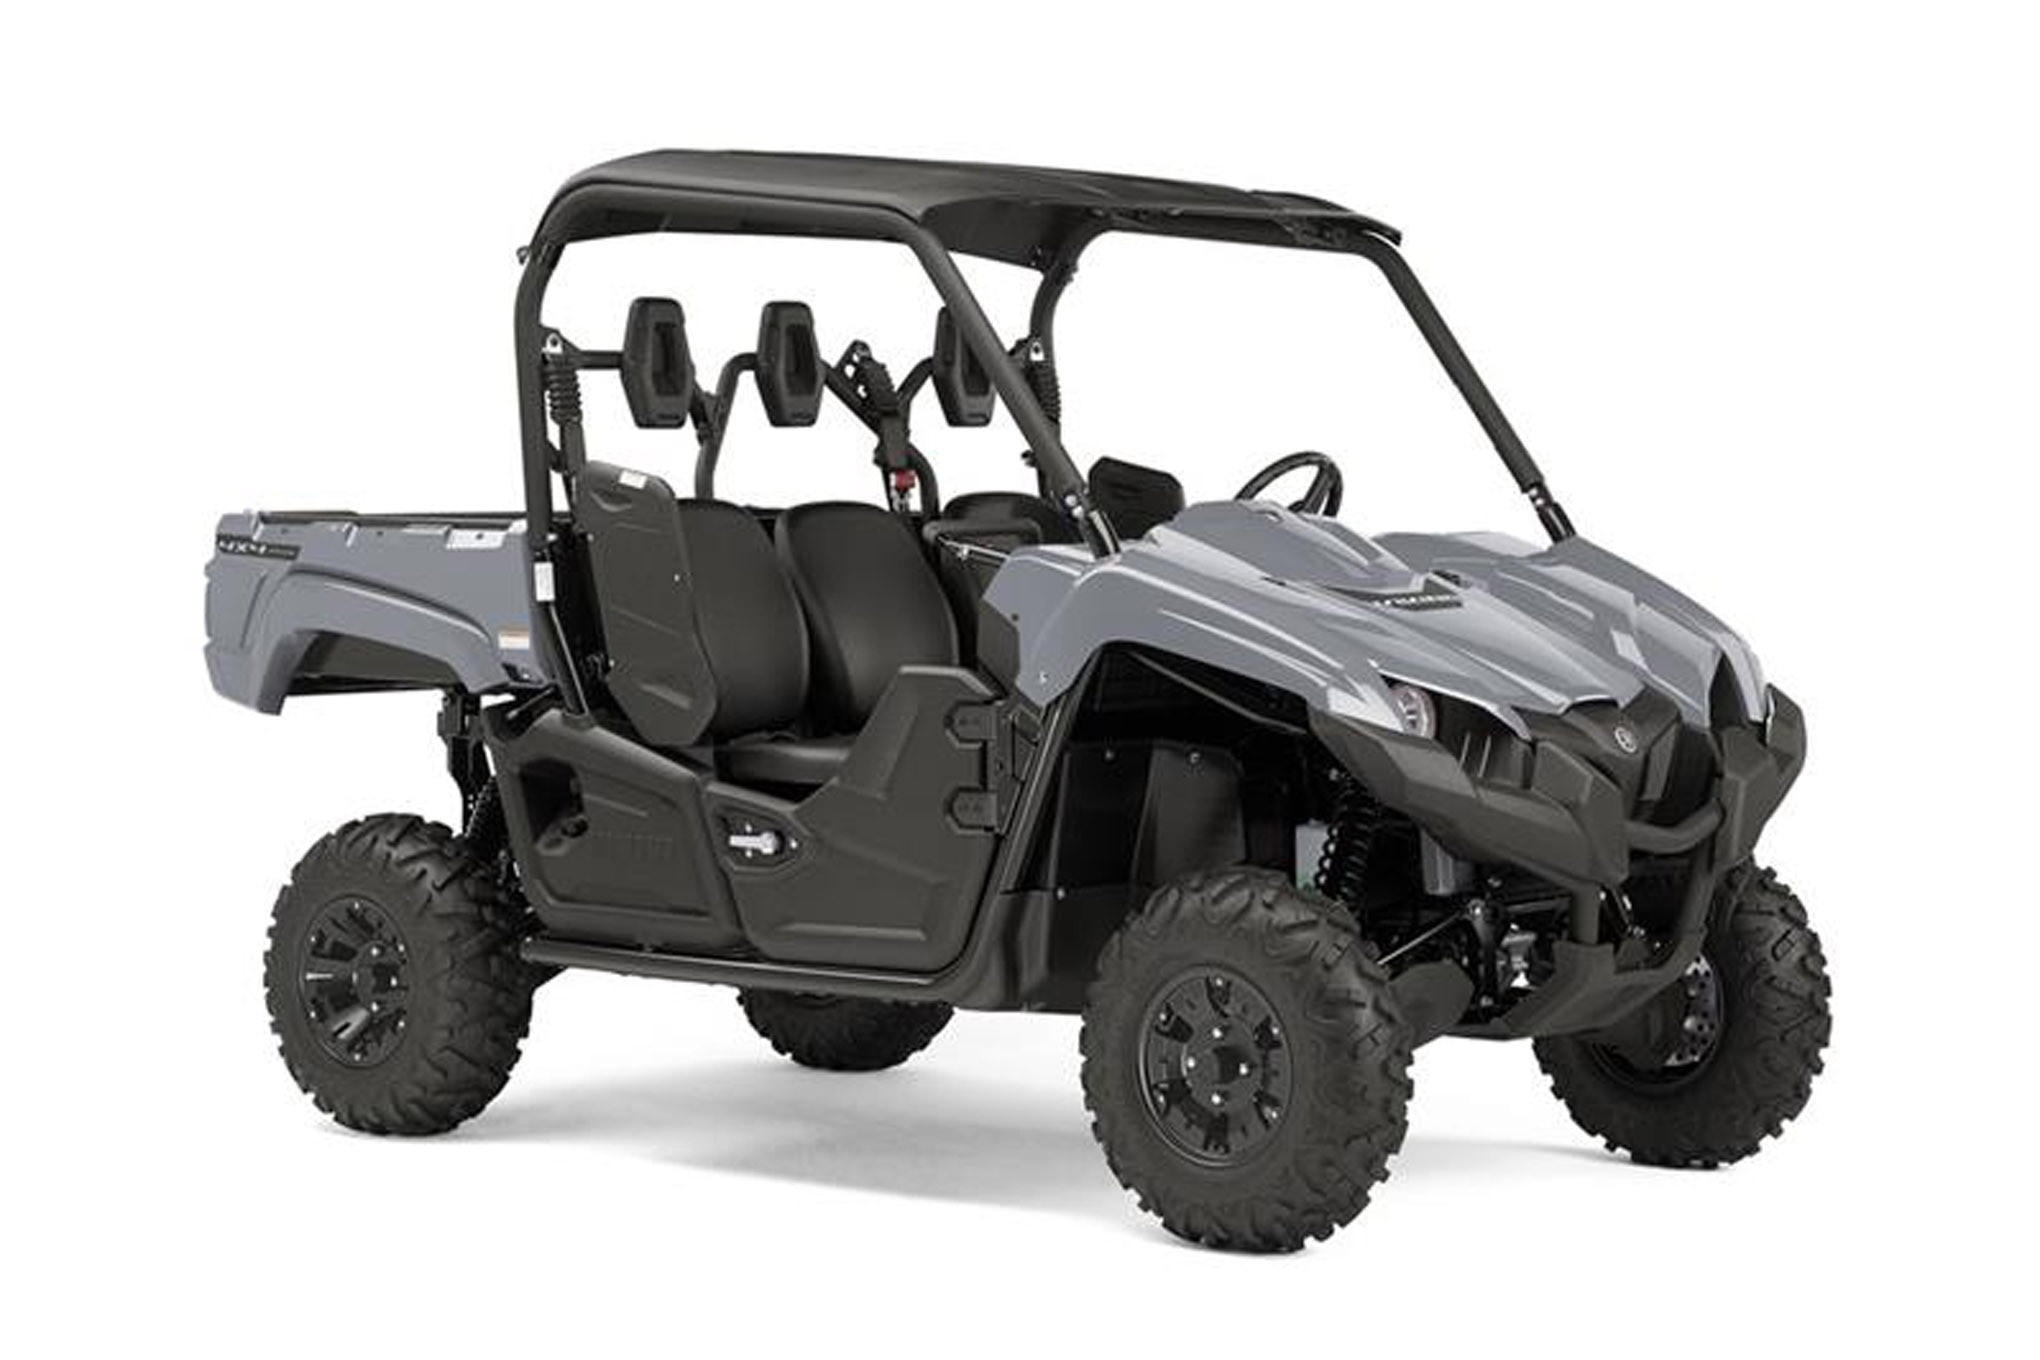 062 utv guide yamaha viking front three quarter